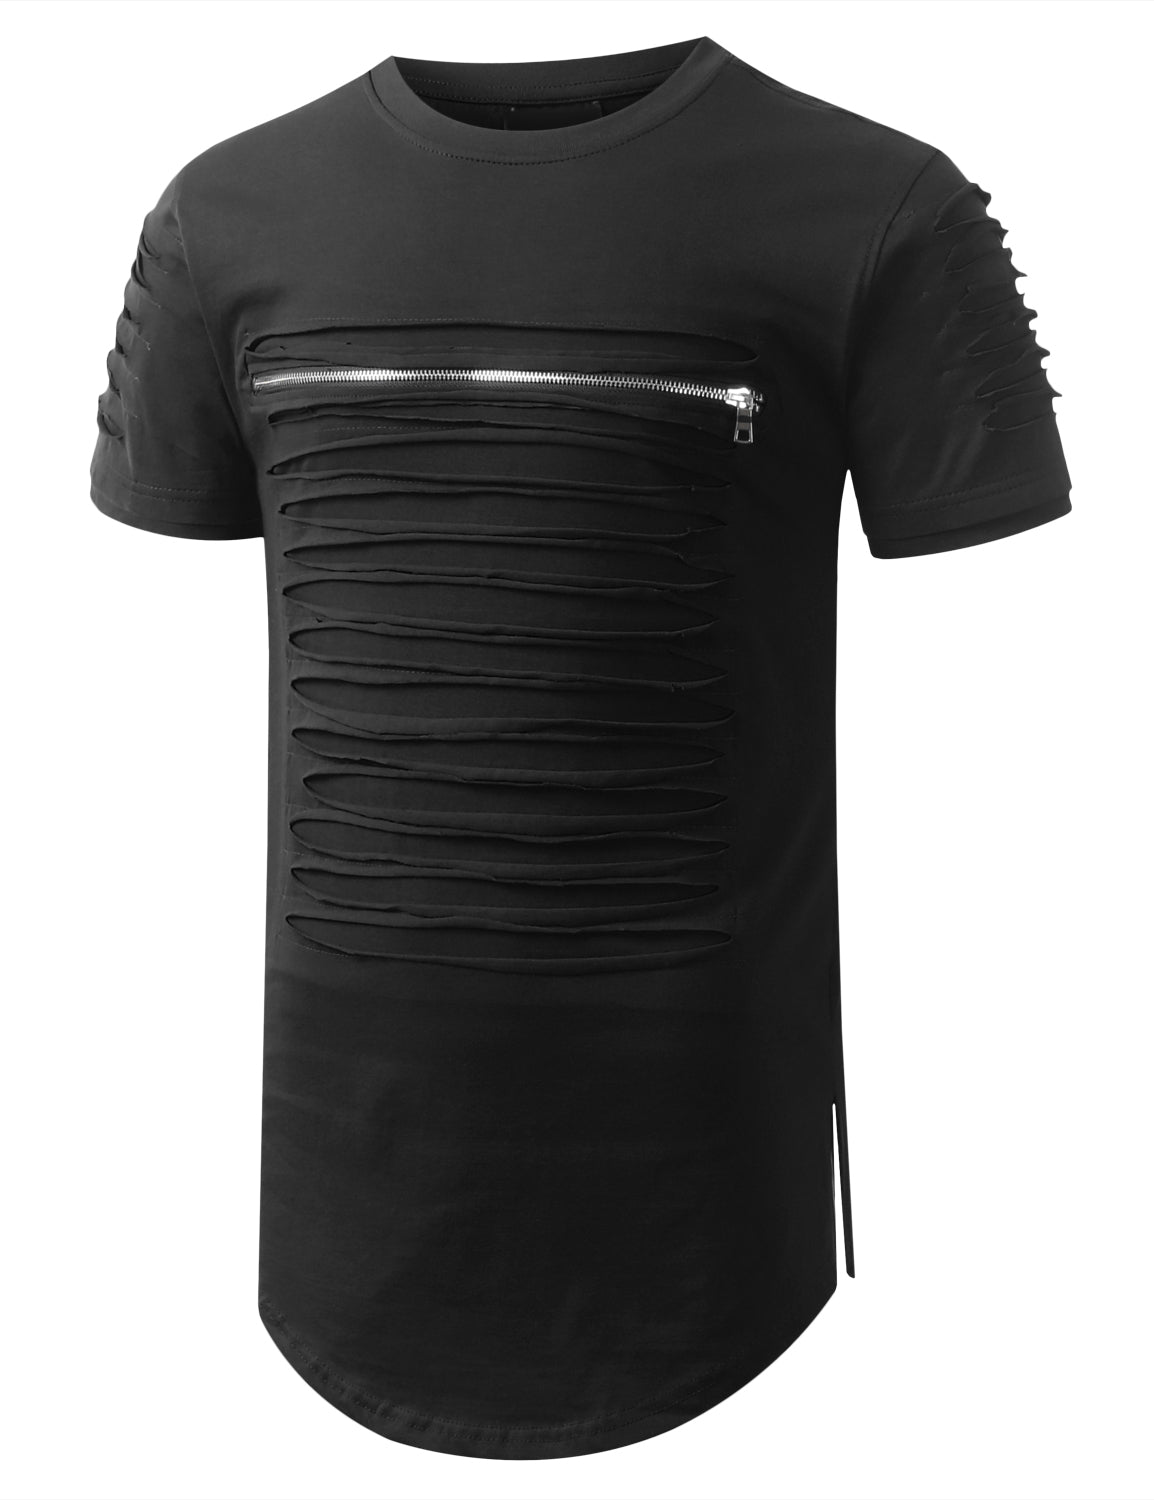 BLACK Ripped Zip Longline Crewneck T-shirts - URBANCREWS